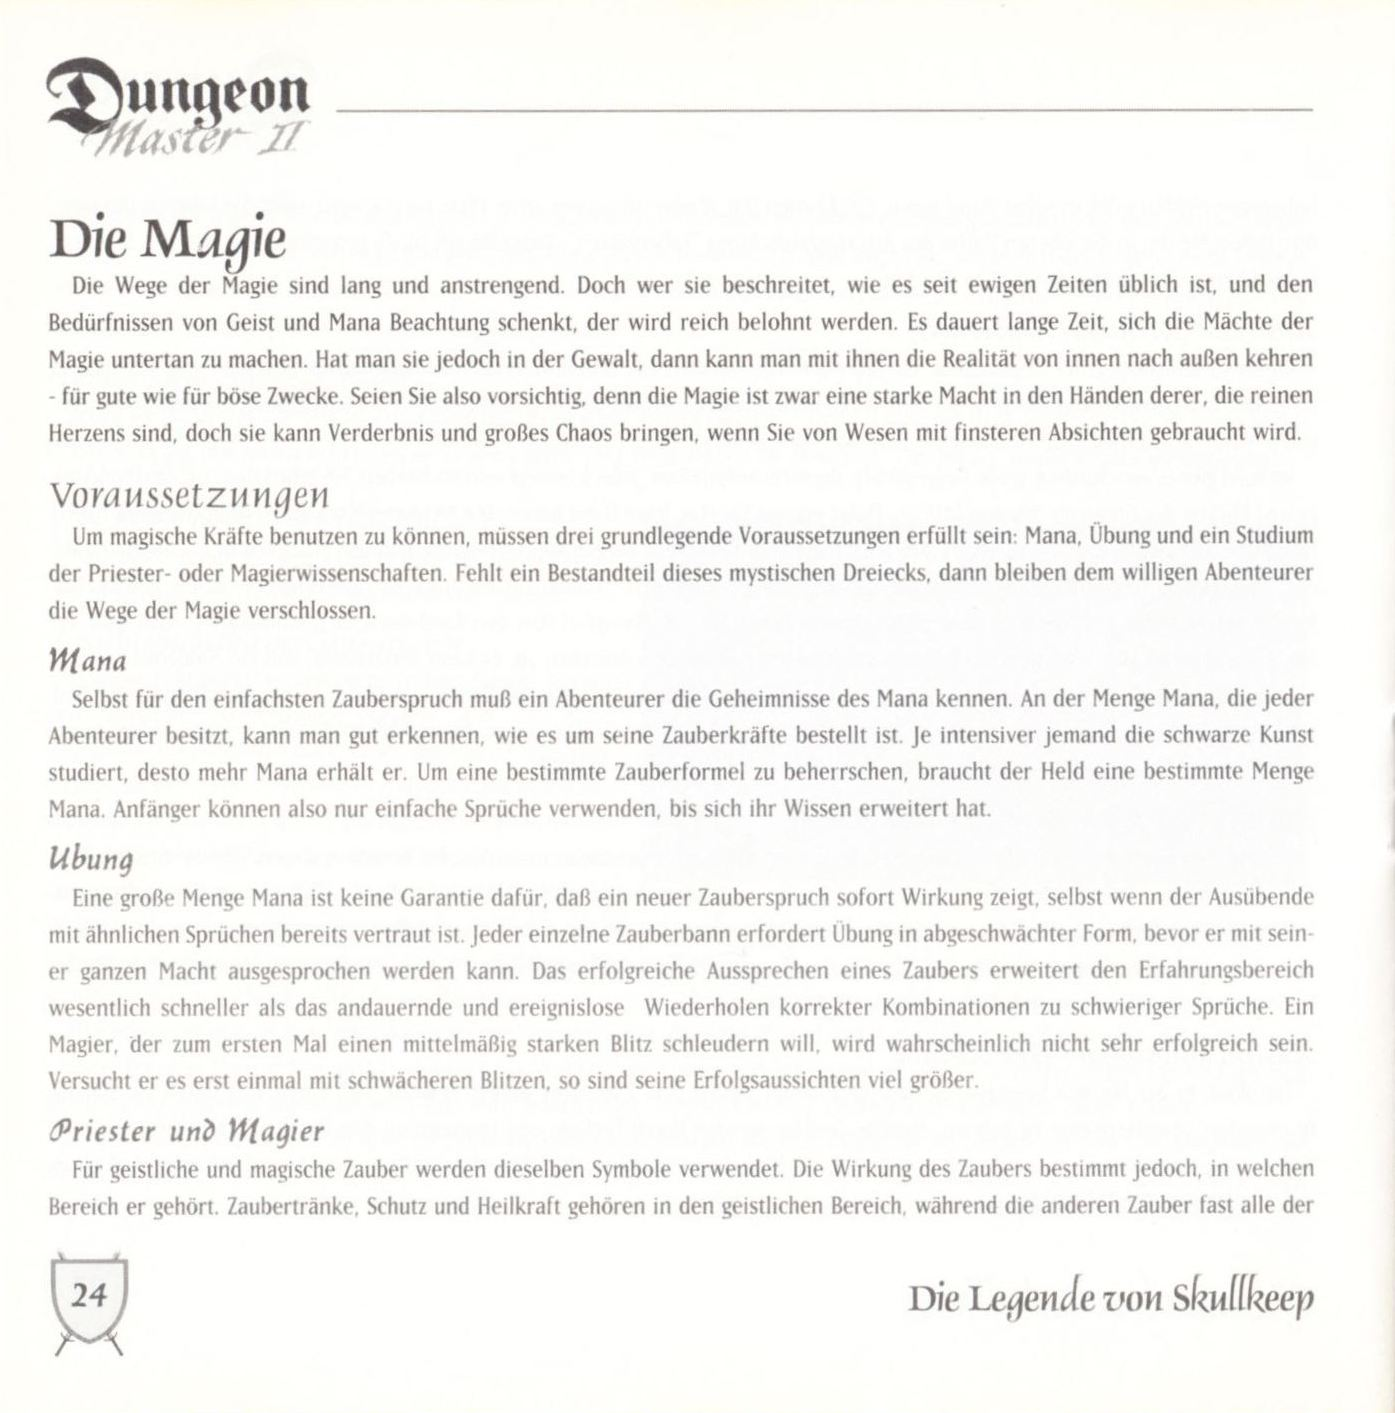 Game - Dungeon Master II - DE - PC - Blackmarket With Booklet - Booklet - Page 026 - Scan